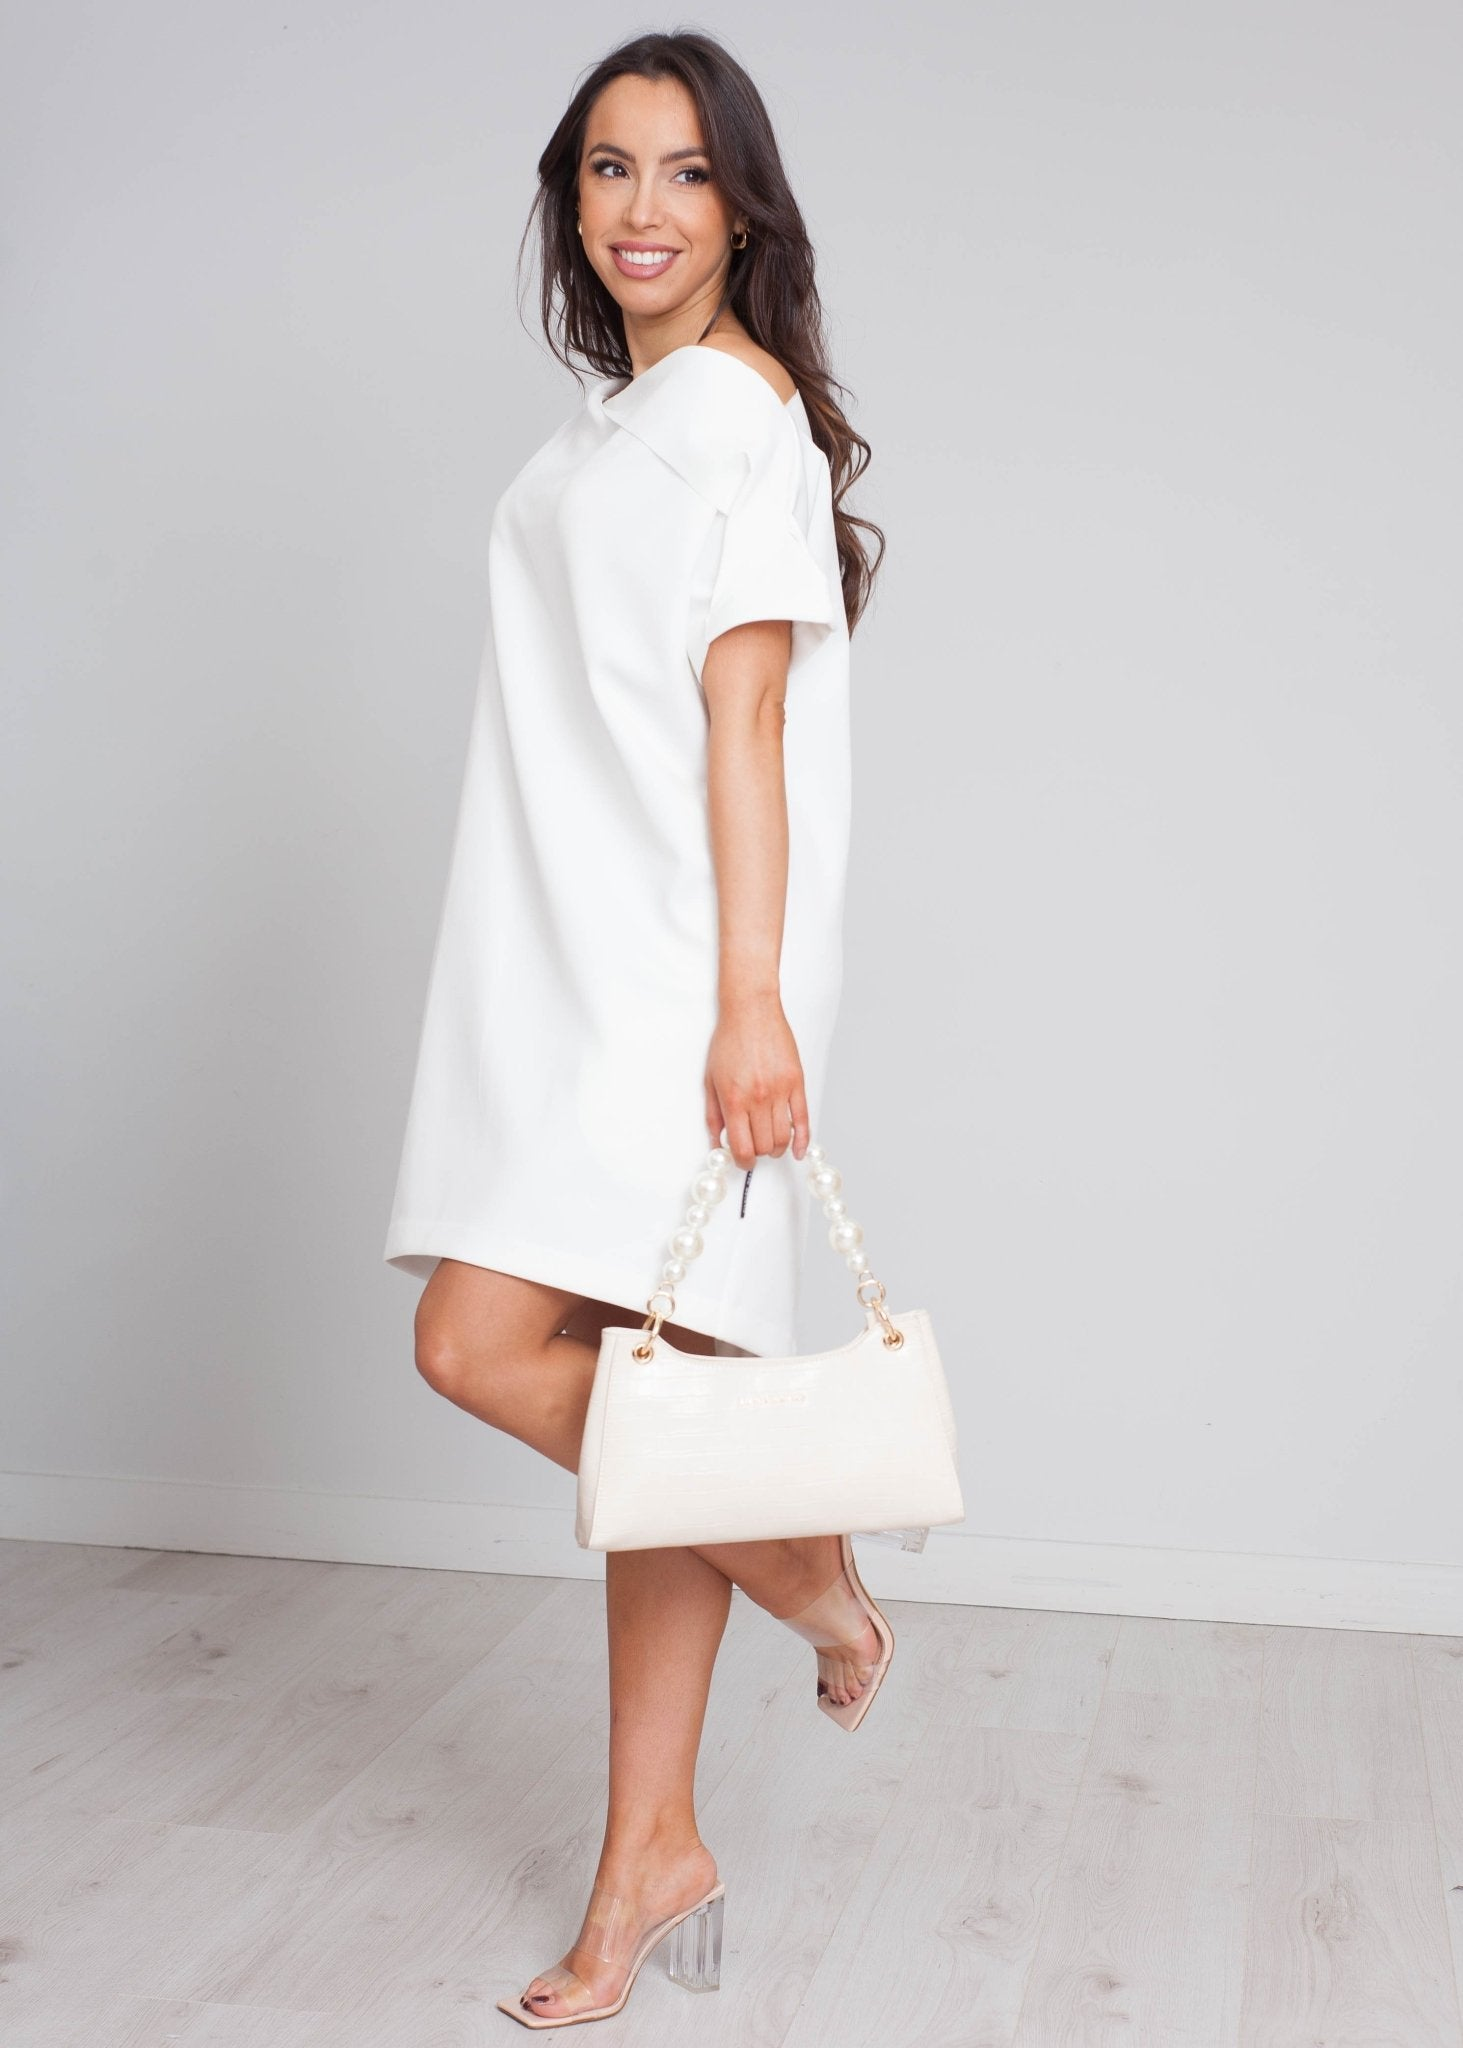 Sophia Slash Neck Mini Dress In White - The Walk in Wardrobe